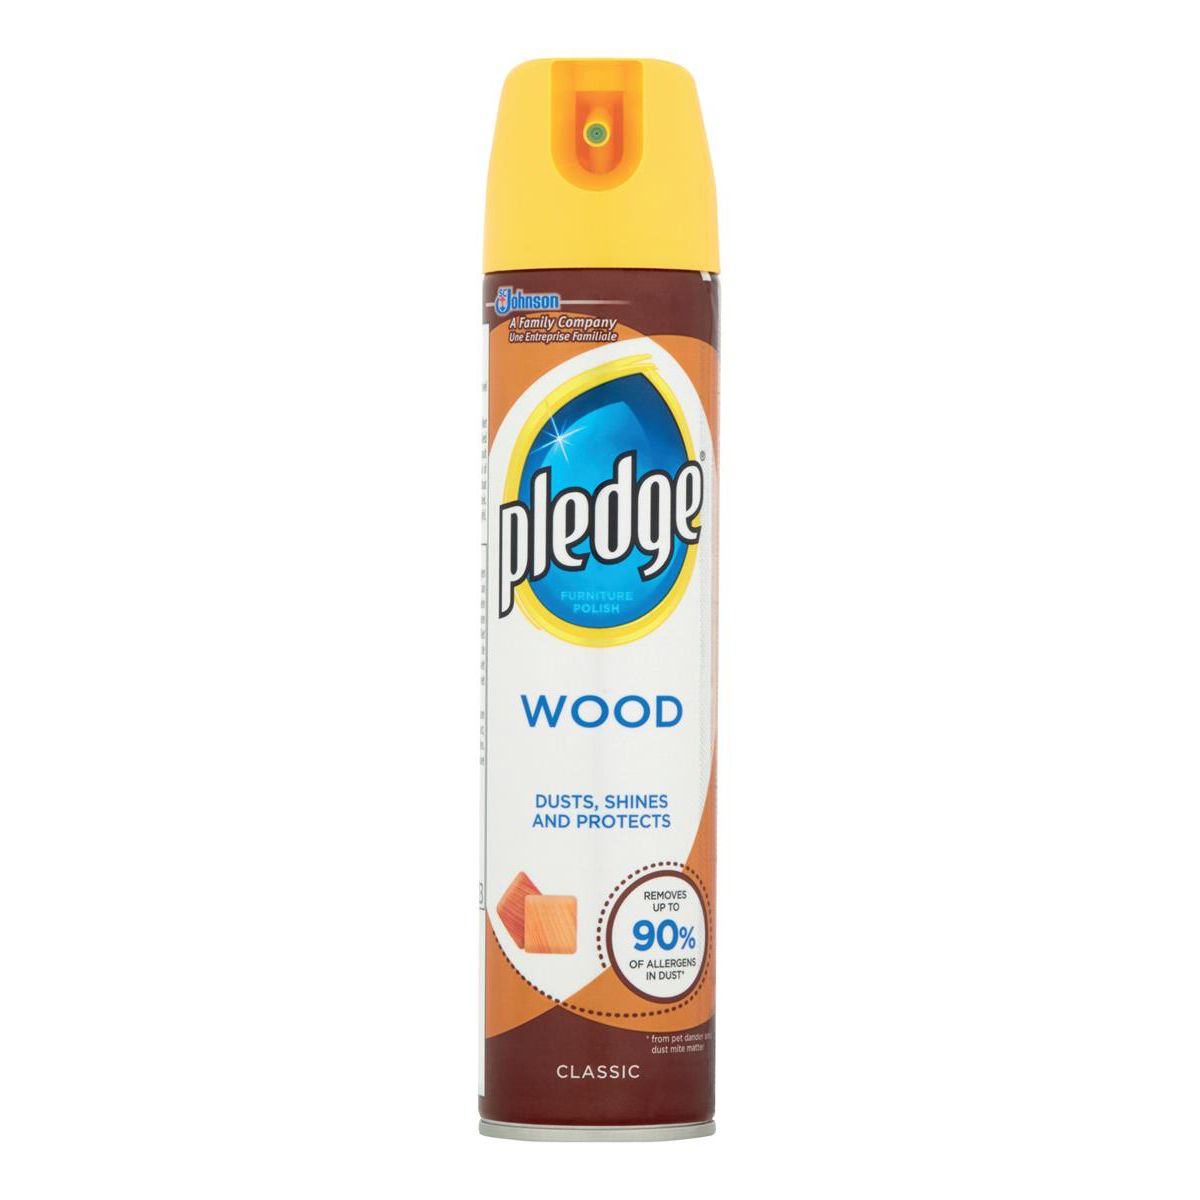 Pledge Wood 5 in 1 Classic Furniture Polish Aerosol Spray 300ml Ref 97974